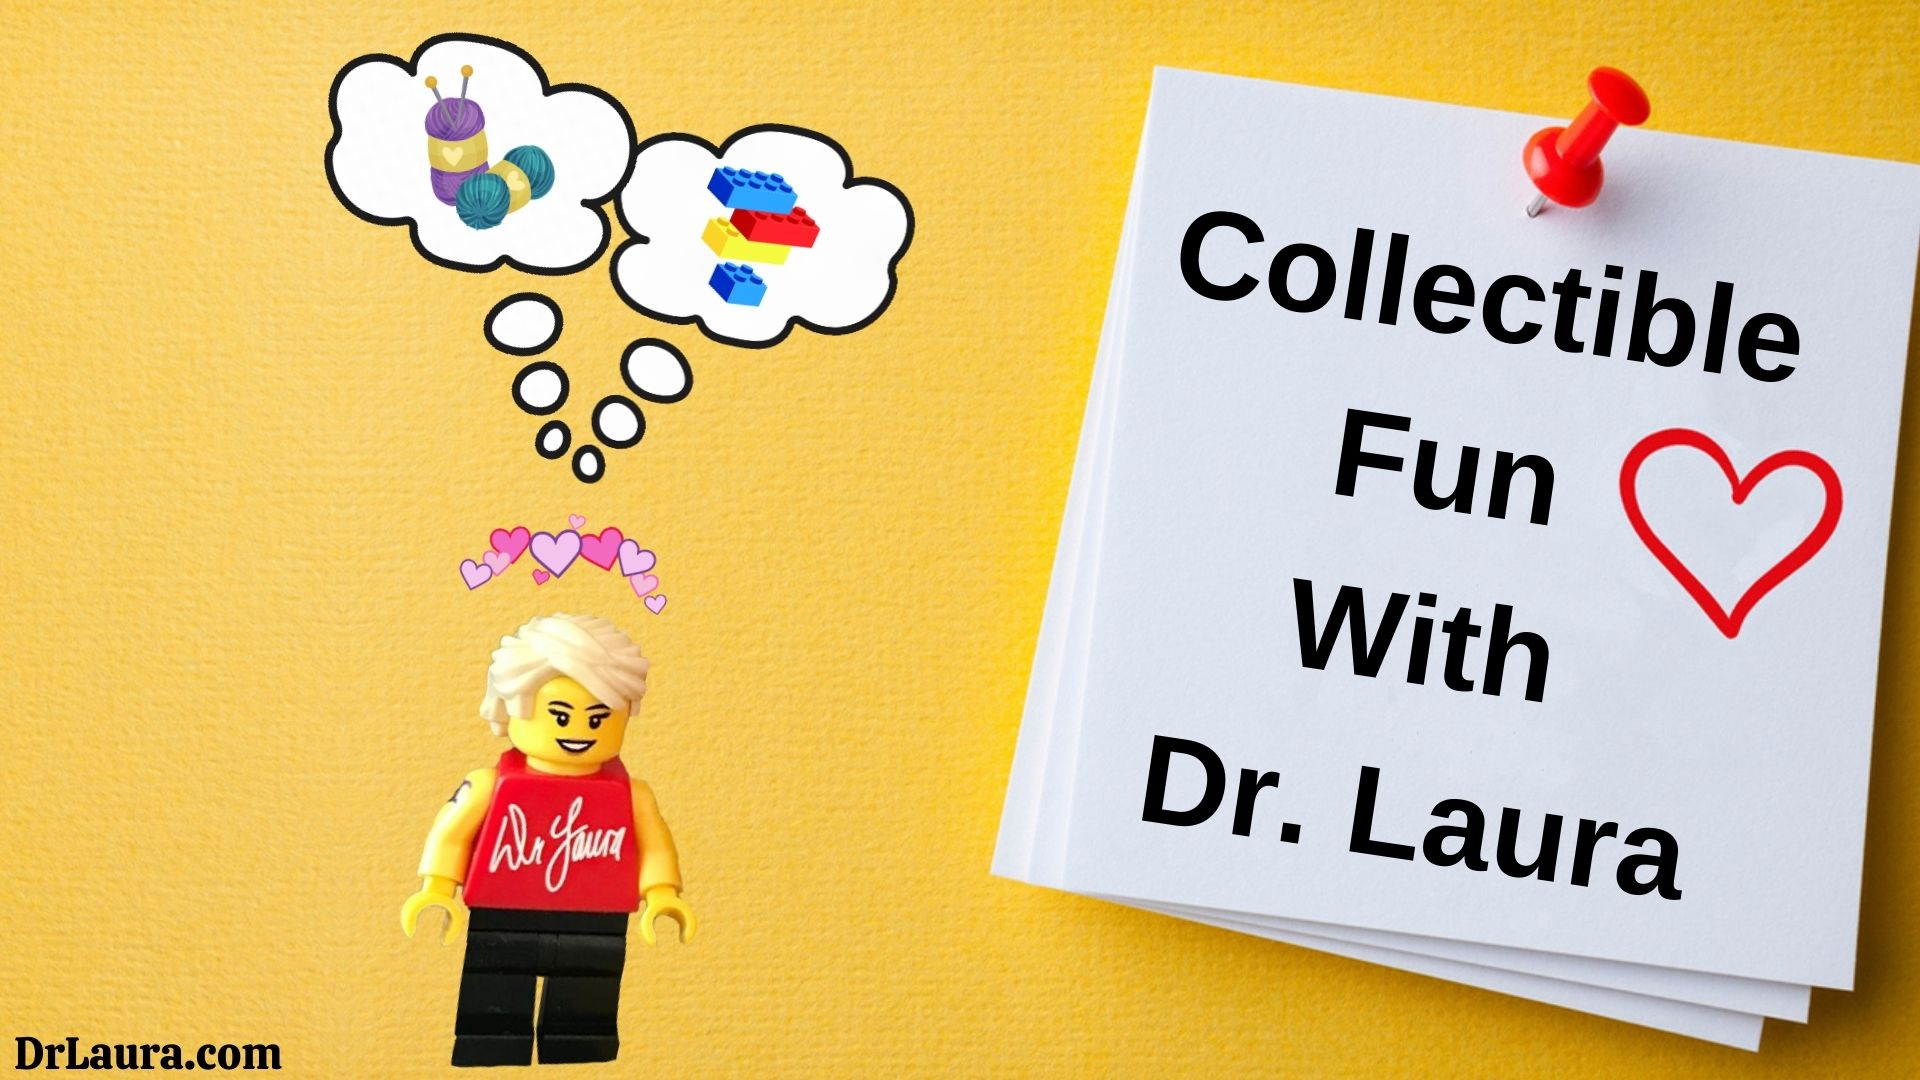 YouTube: Collecting Fun with Dr. Laura